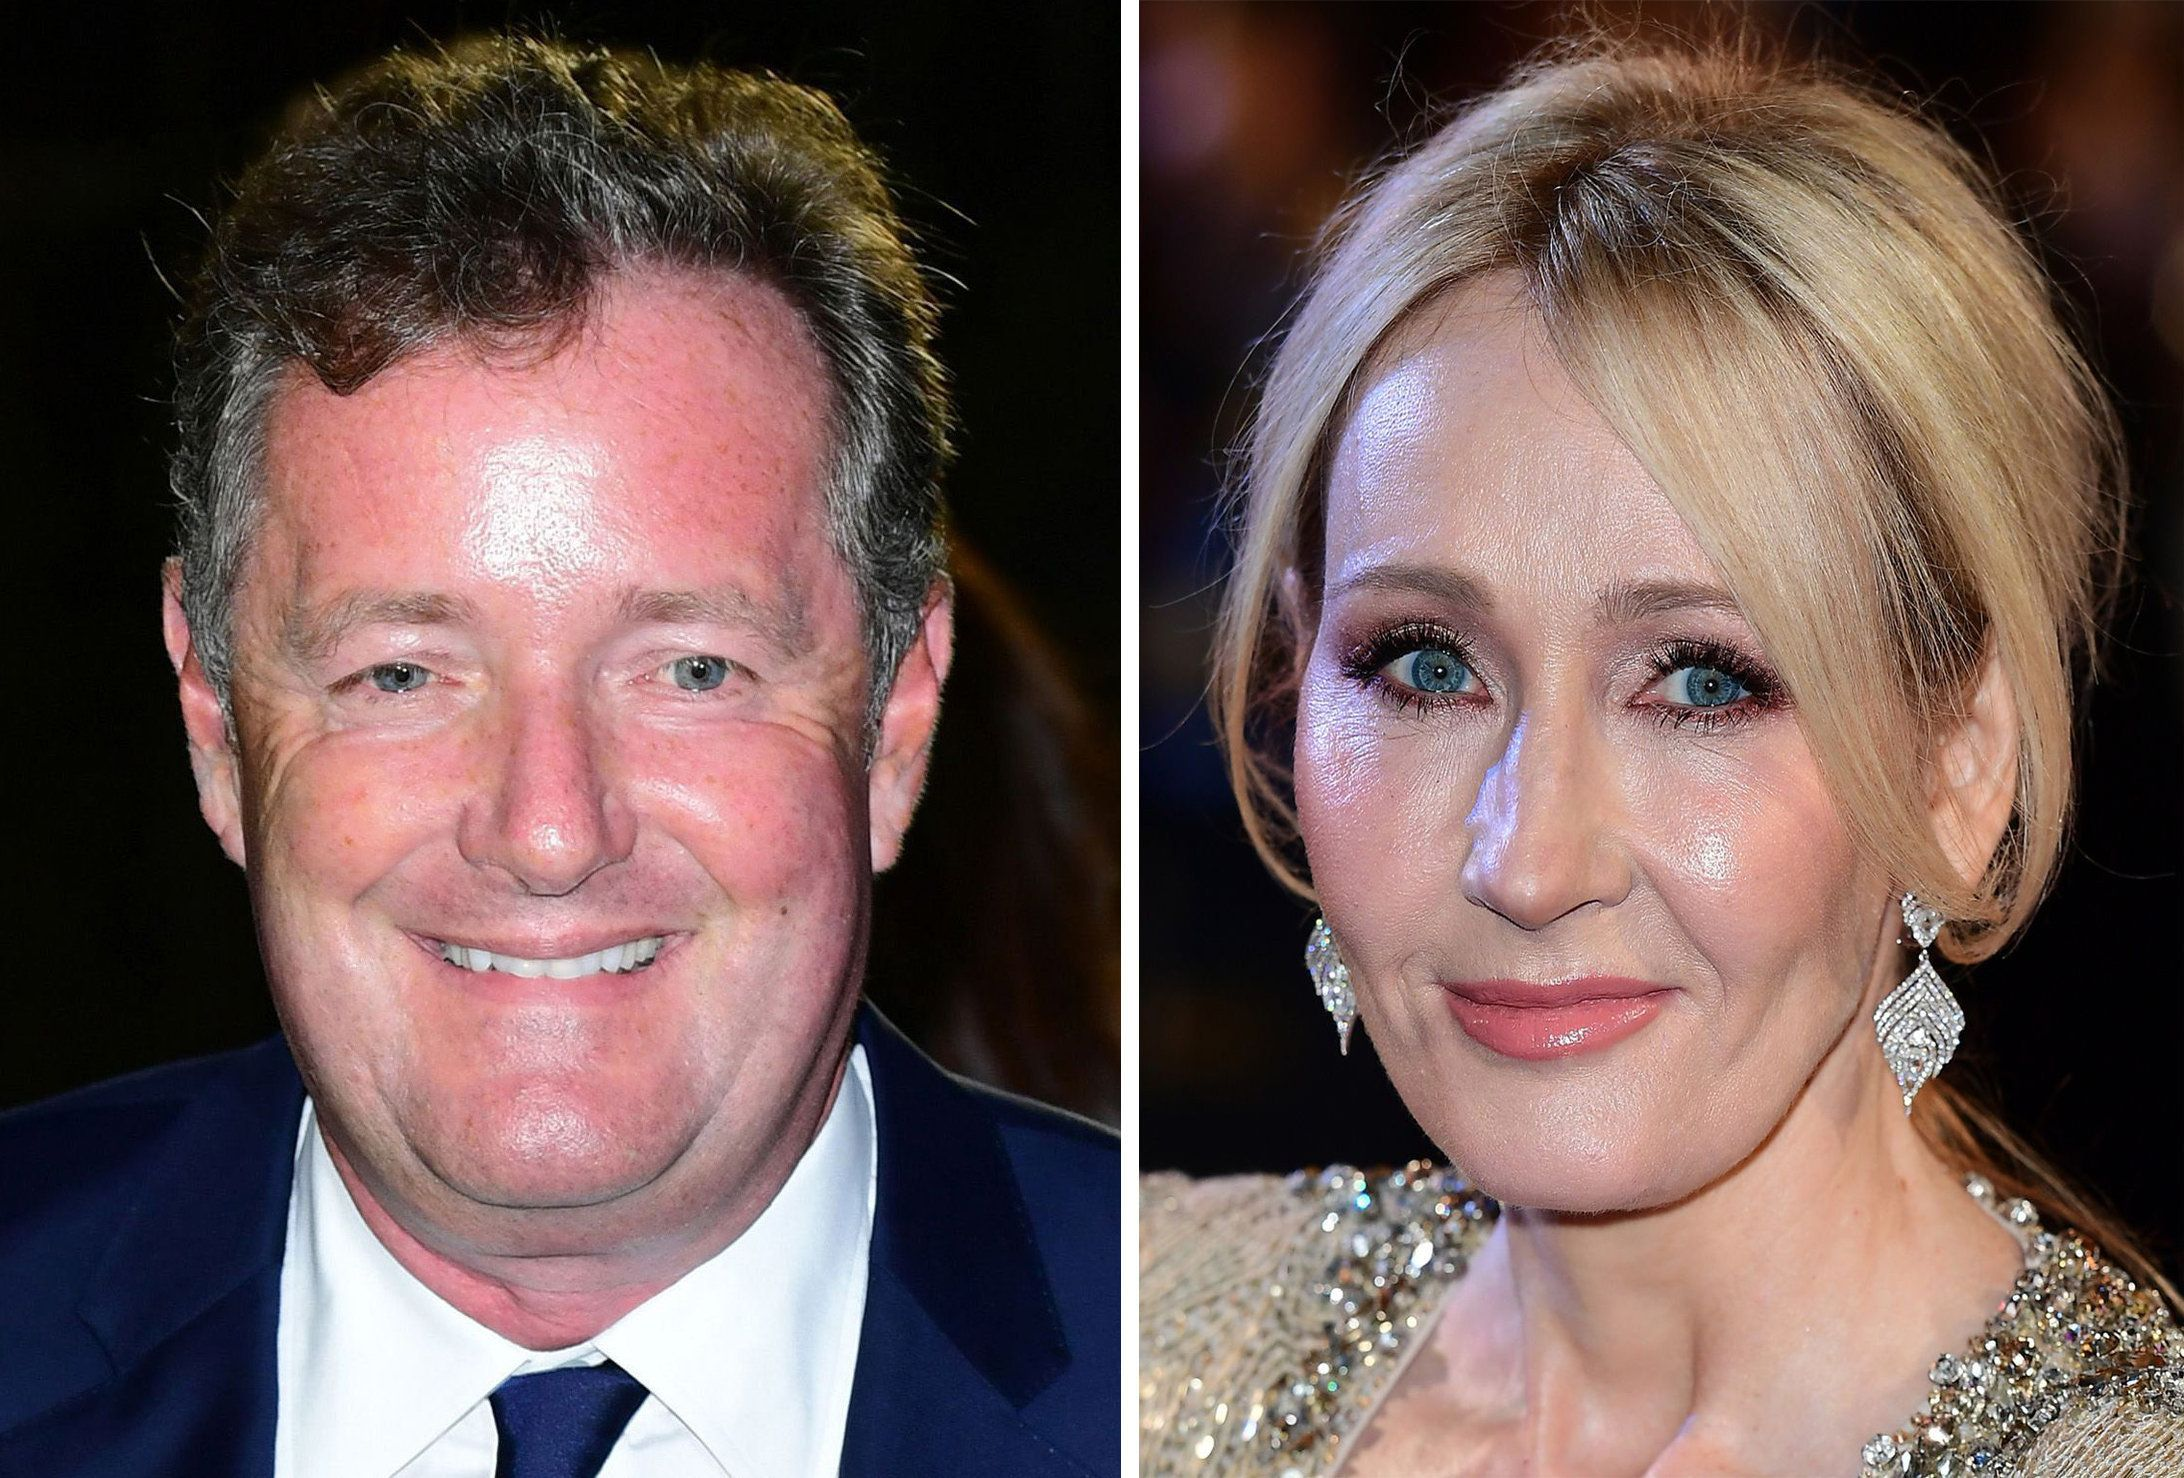 Piers Morgan Launches Fresh Attack On 'Ghastly' J.K.